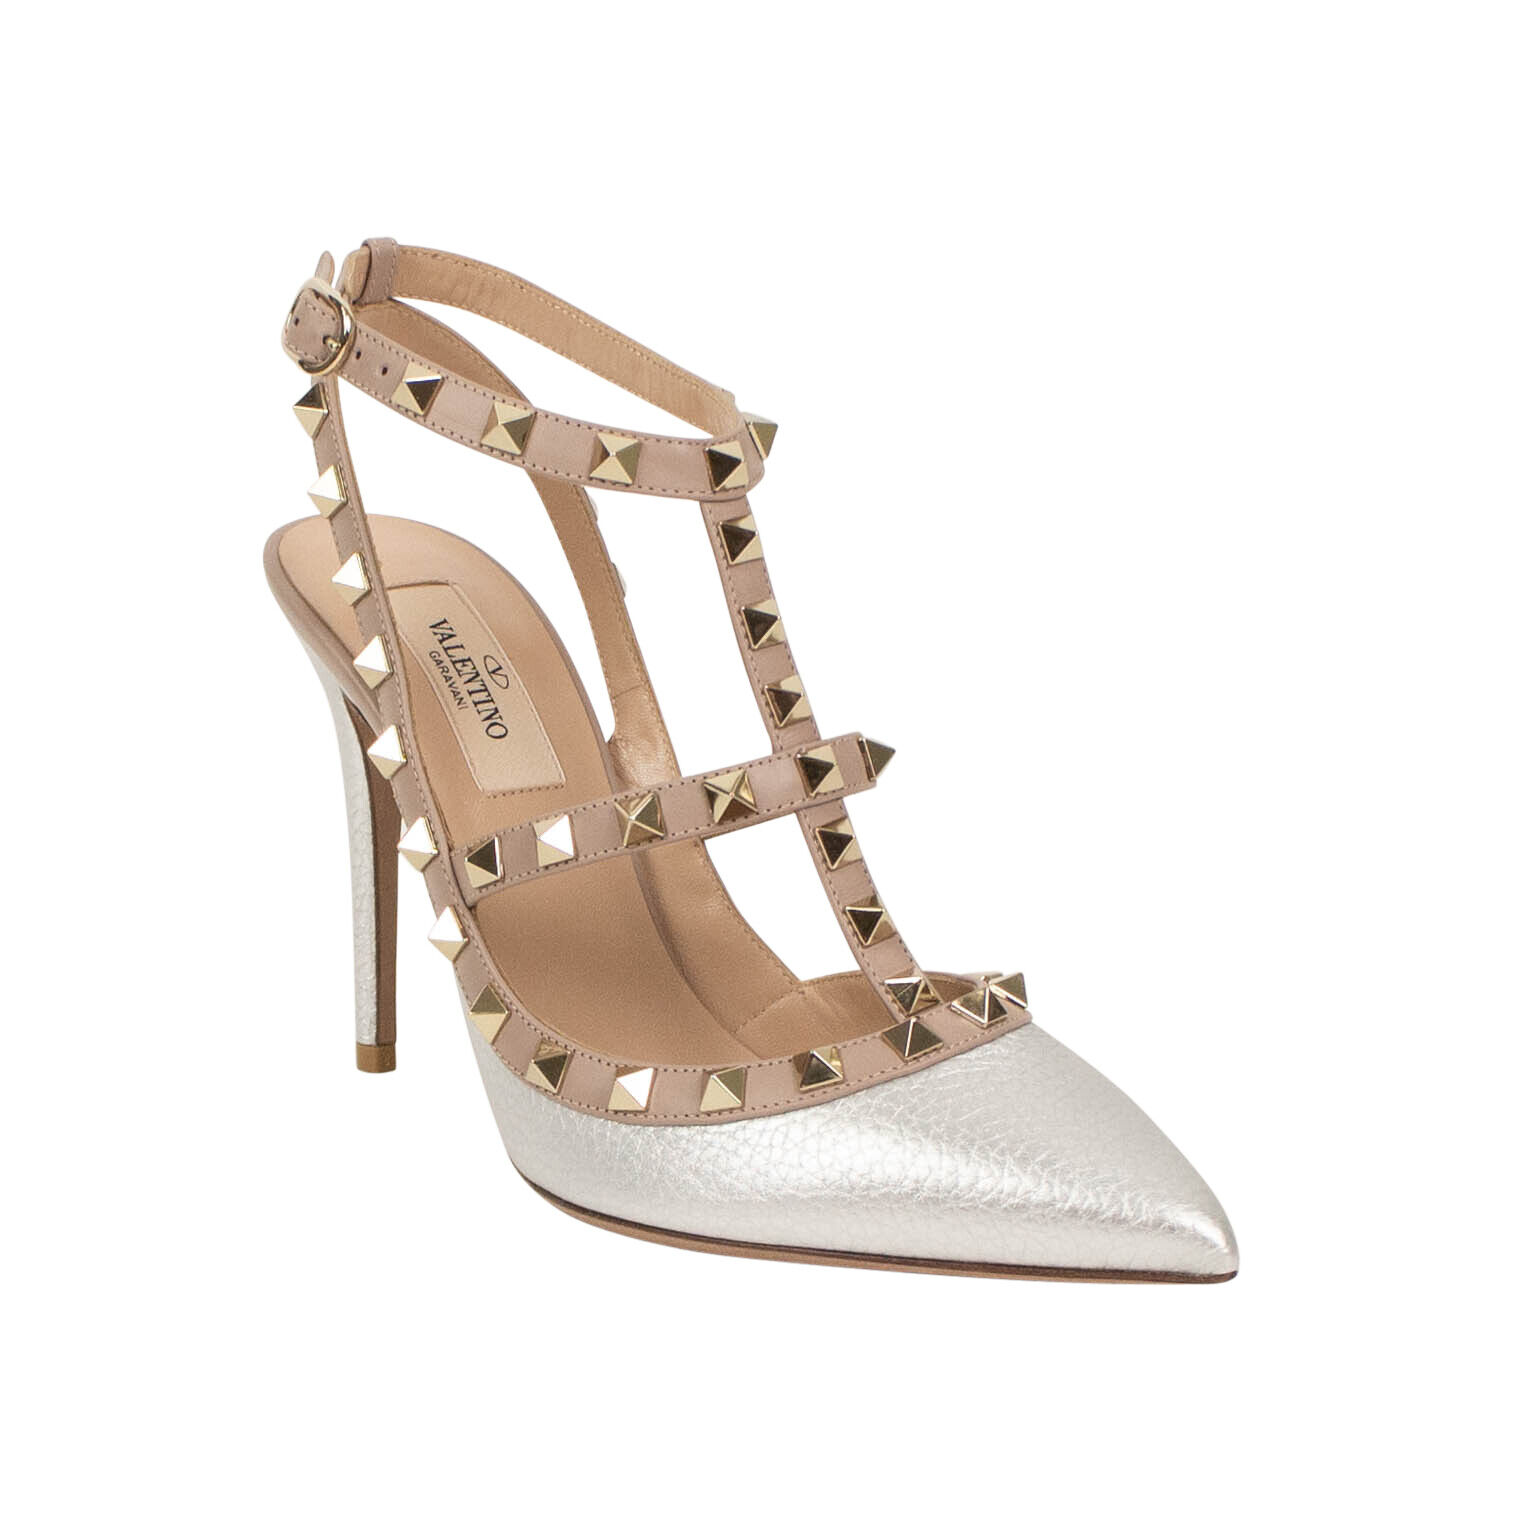 NIB VALENTINO Silver Metallic Rockstud Caged Pumps Heels Shoes 1040 1045